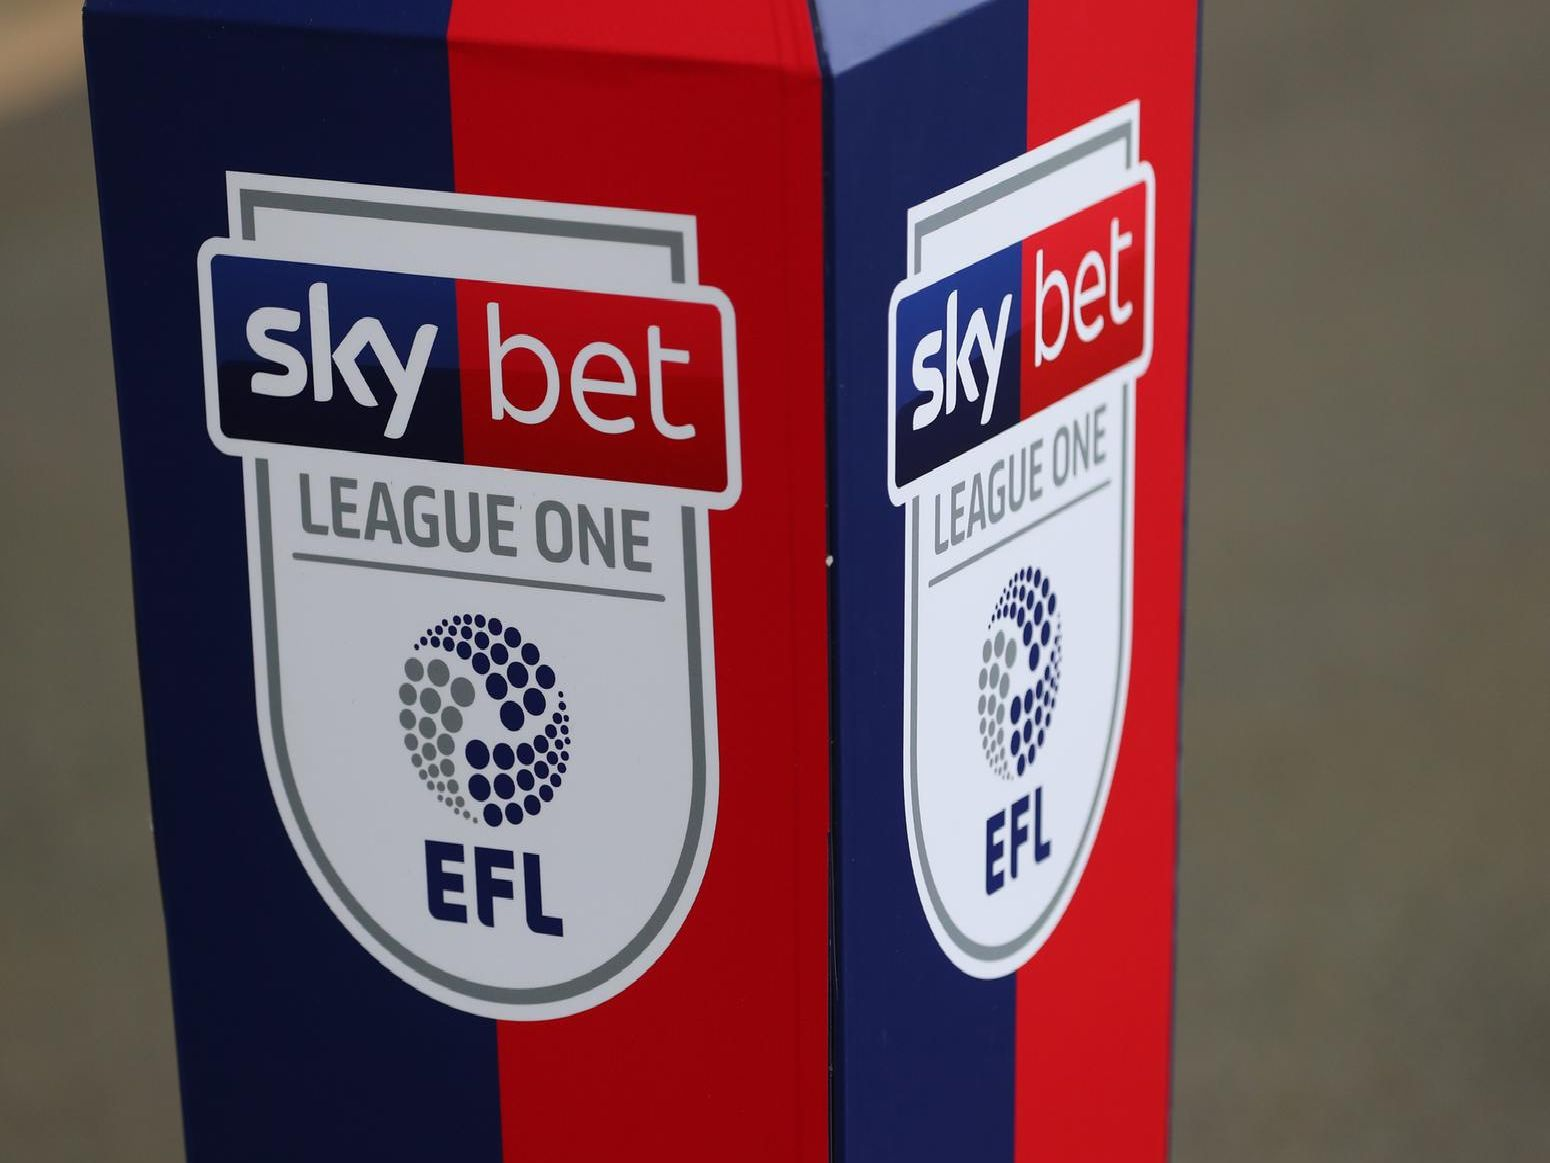 League One promotion race: Who the bookies are backing for Championship elevation